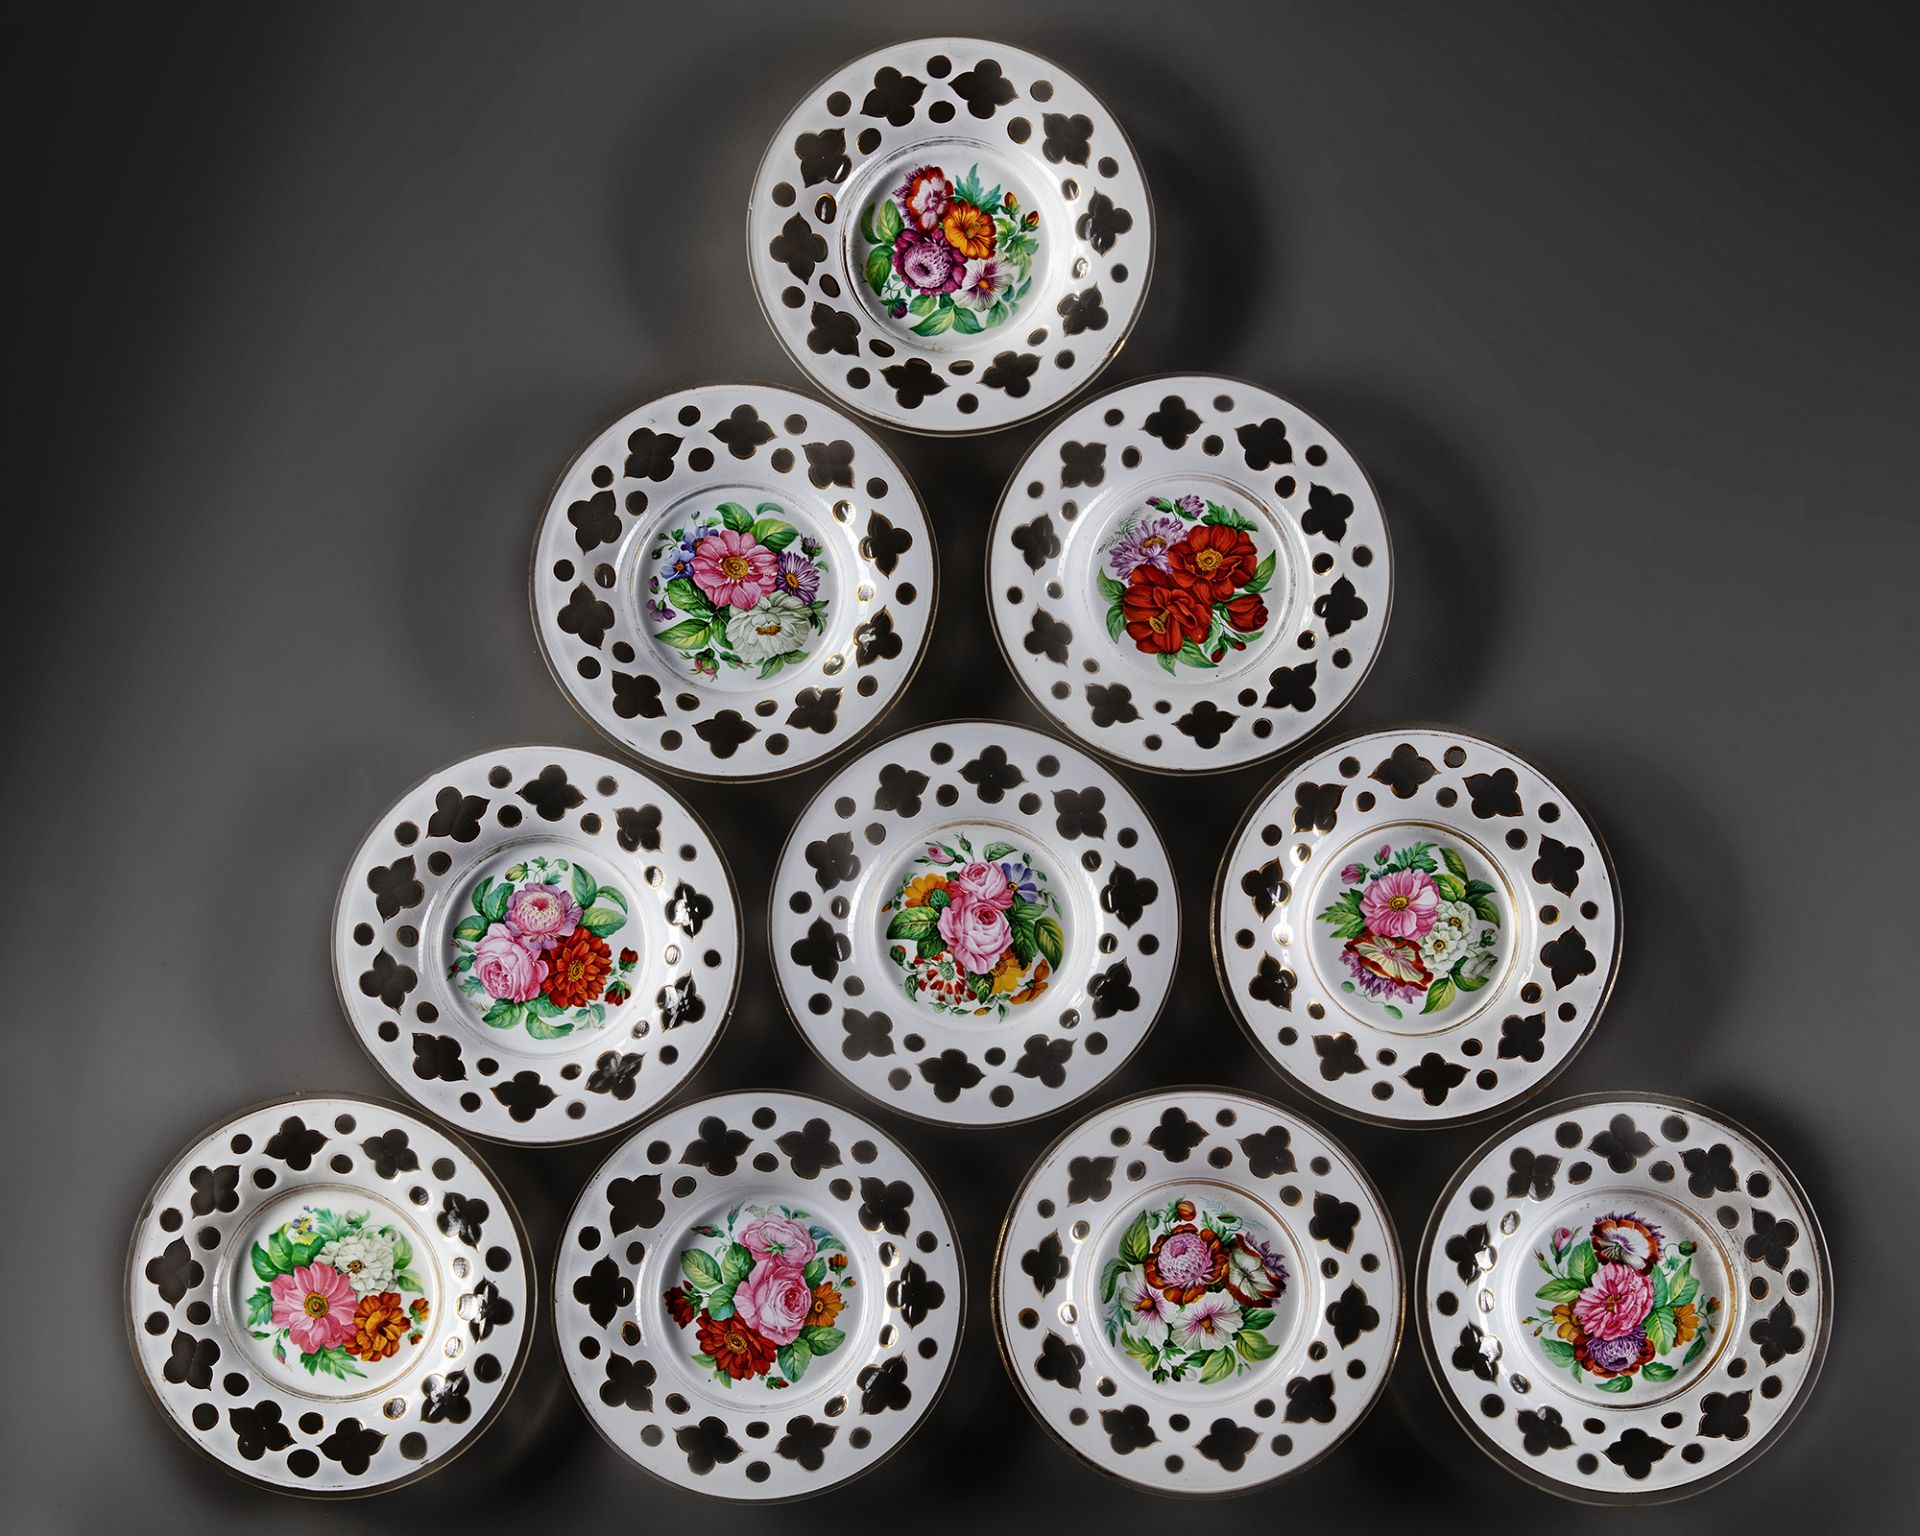 A FRENCH SET OF OPALINE PLATES, 19TH CENTURY